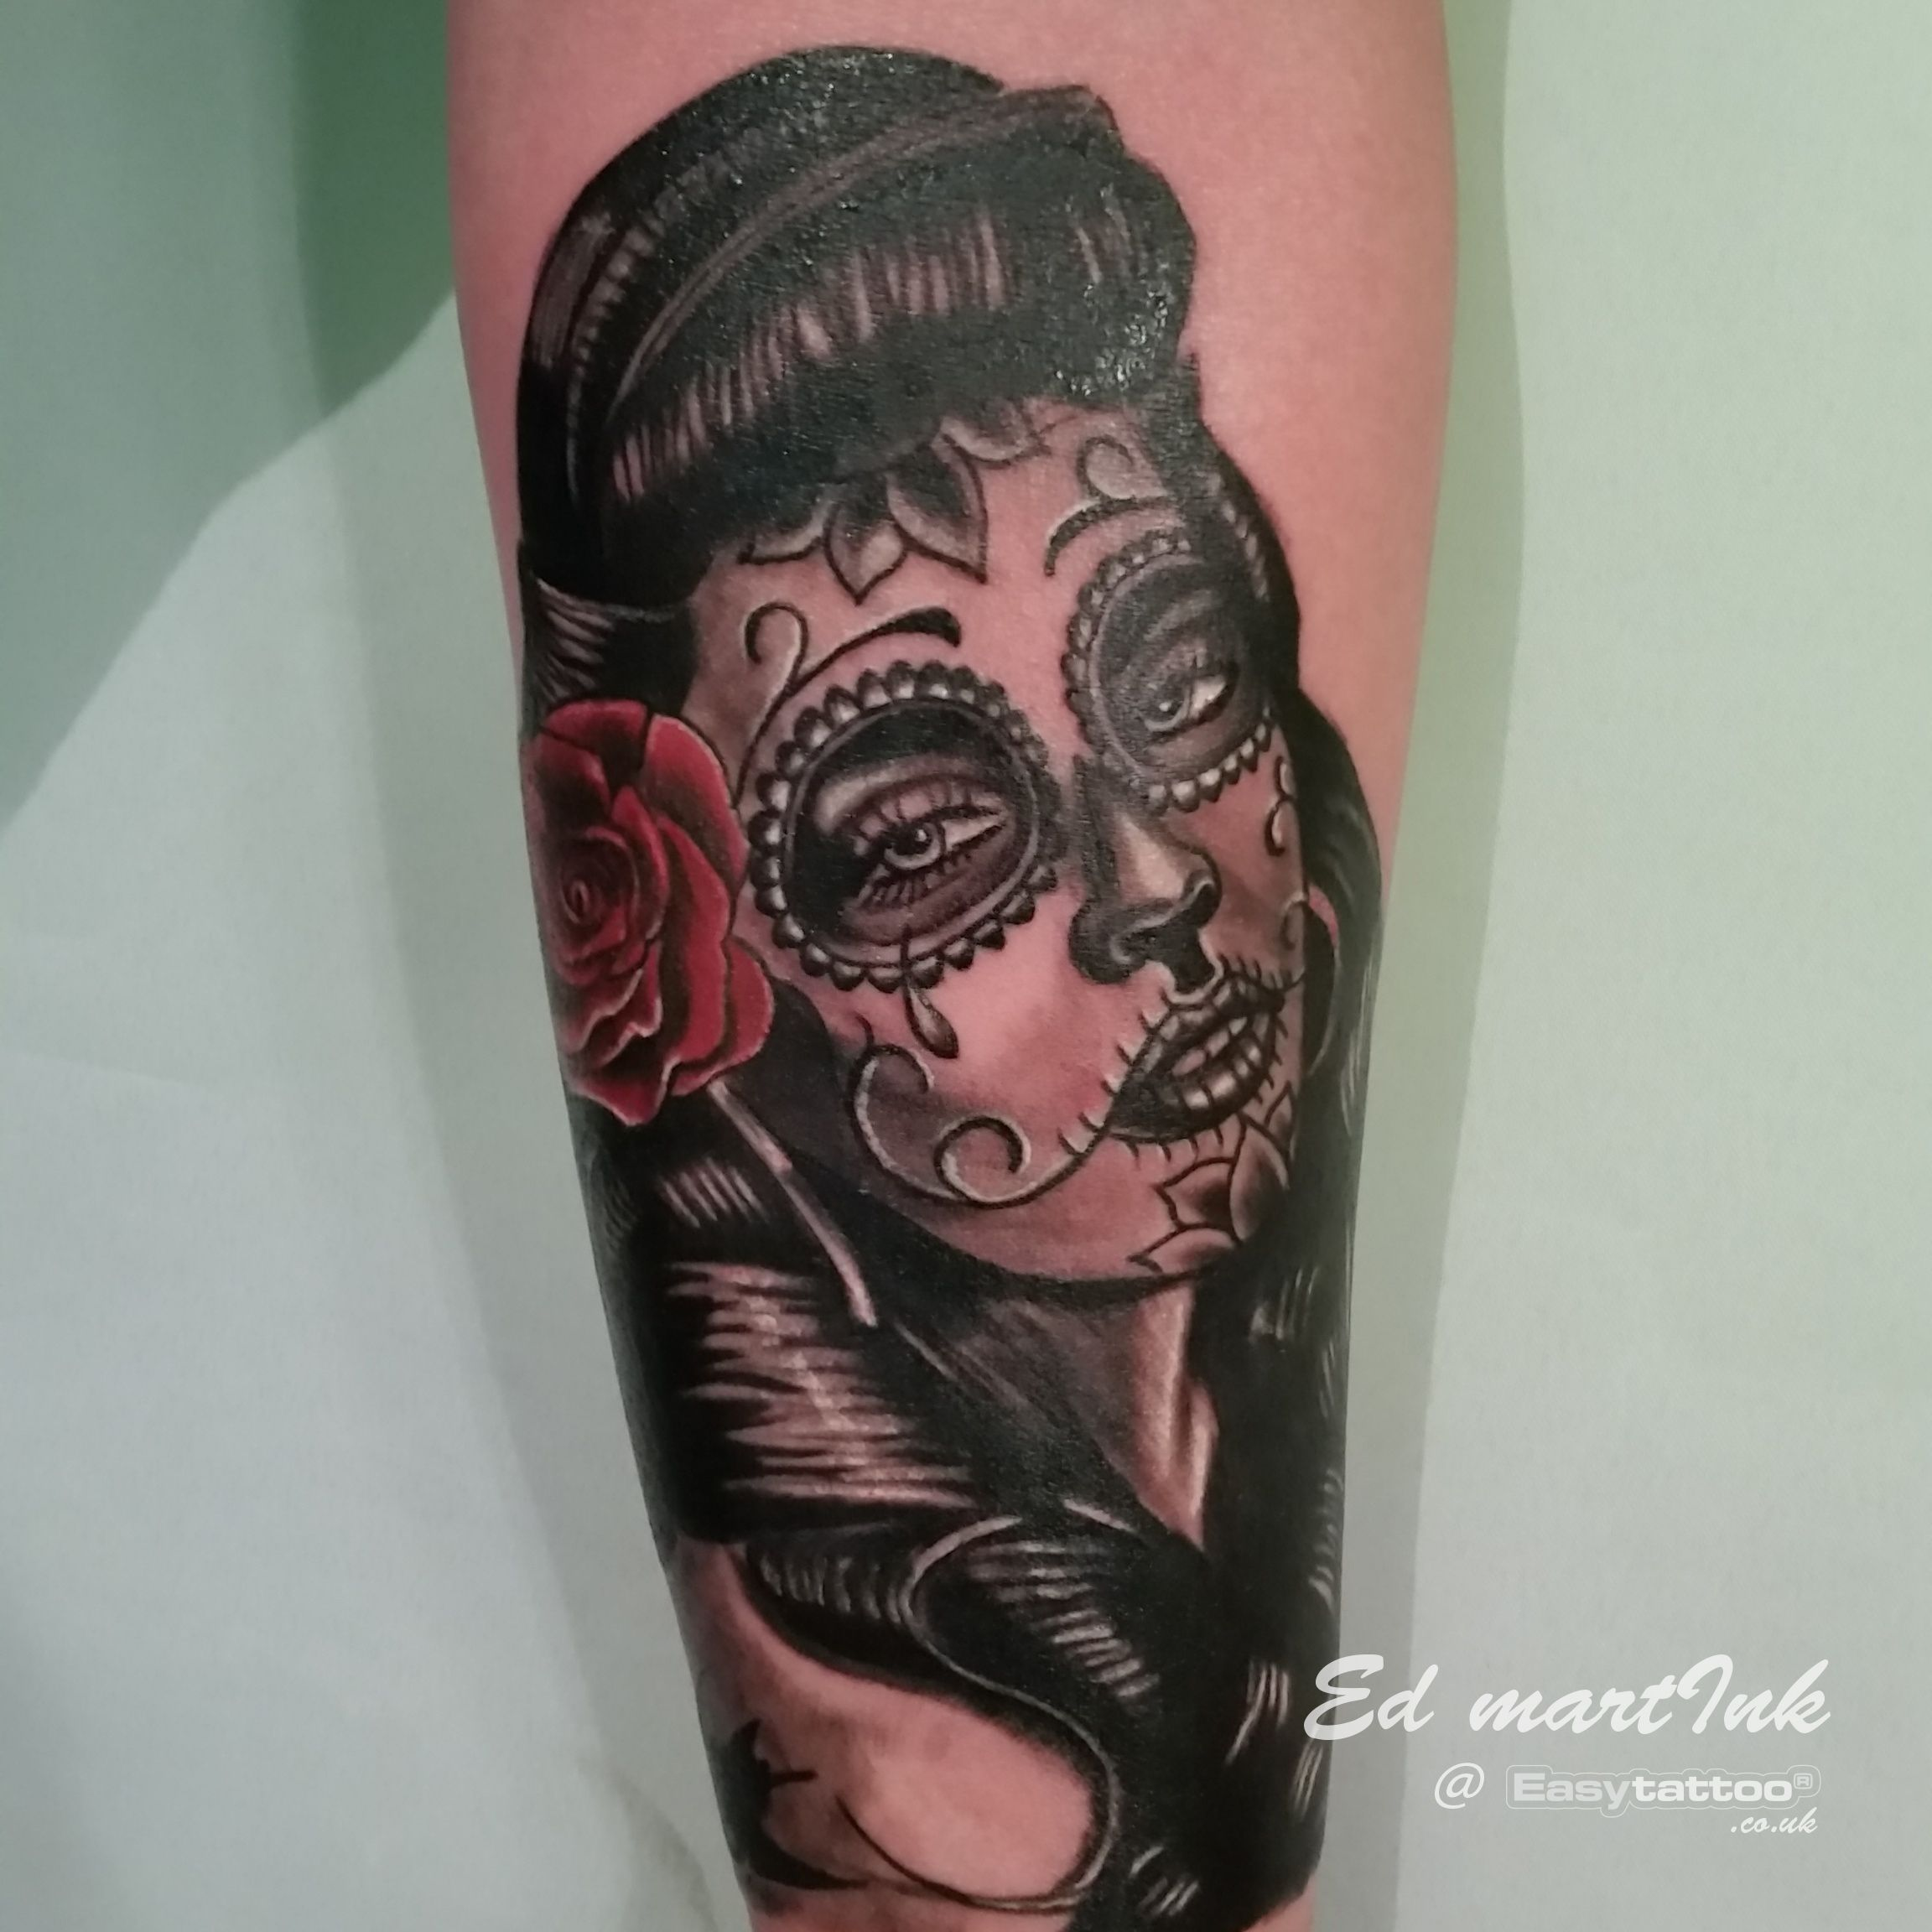 Ed Martink Tattoo Artist In London At Easytattoo Co Uk Tattoos Tattoo Artists Tattoo Studio